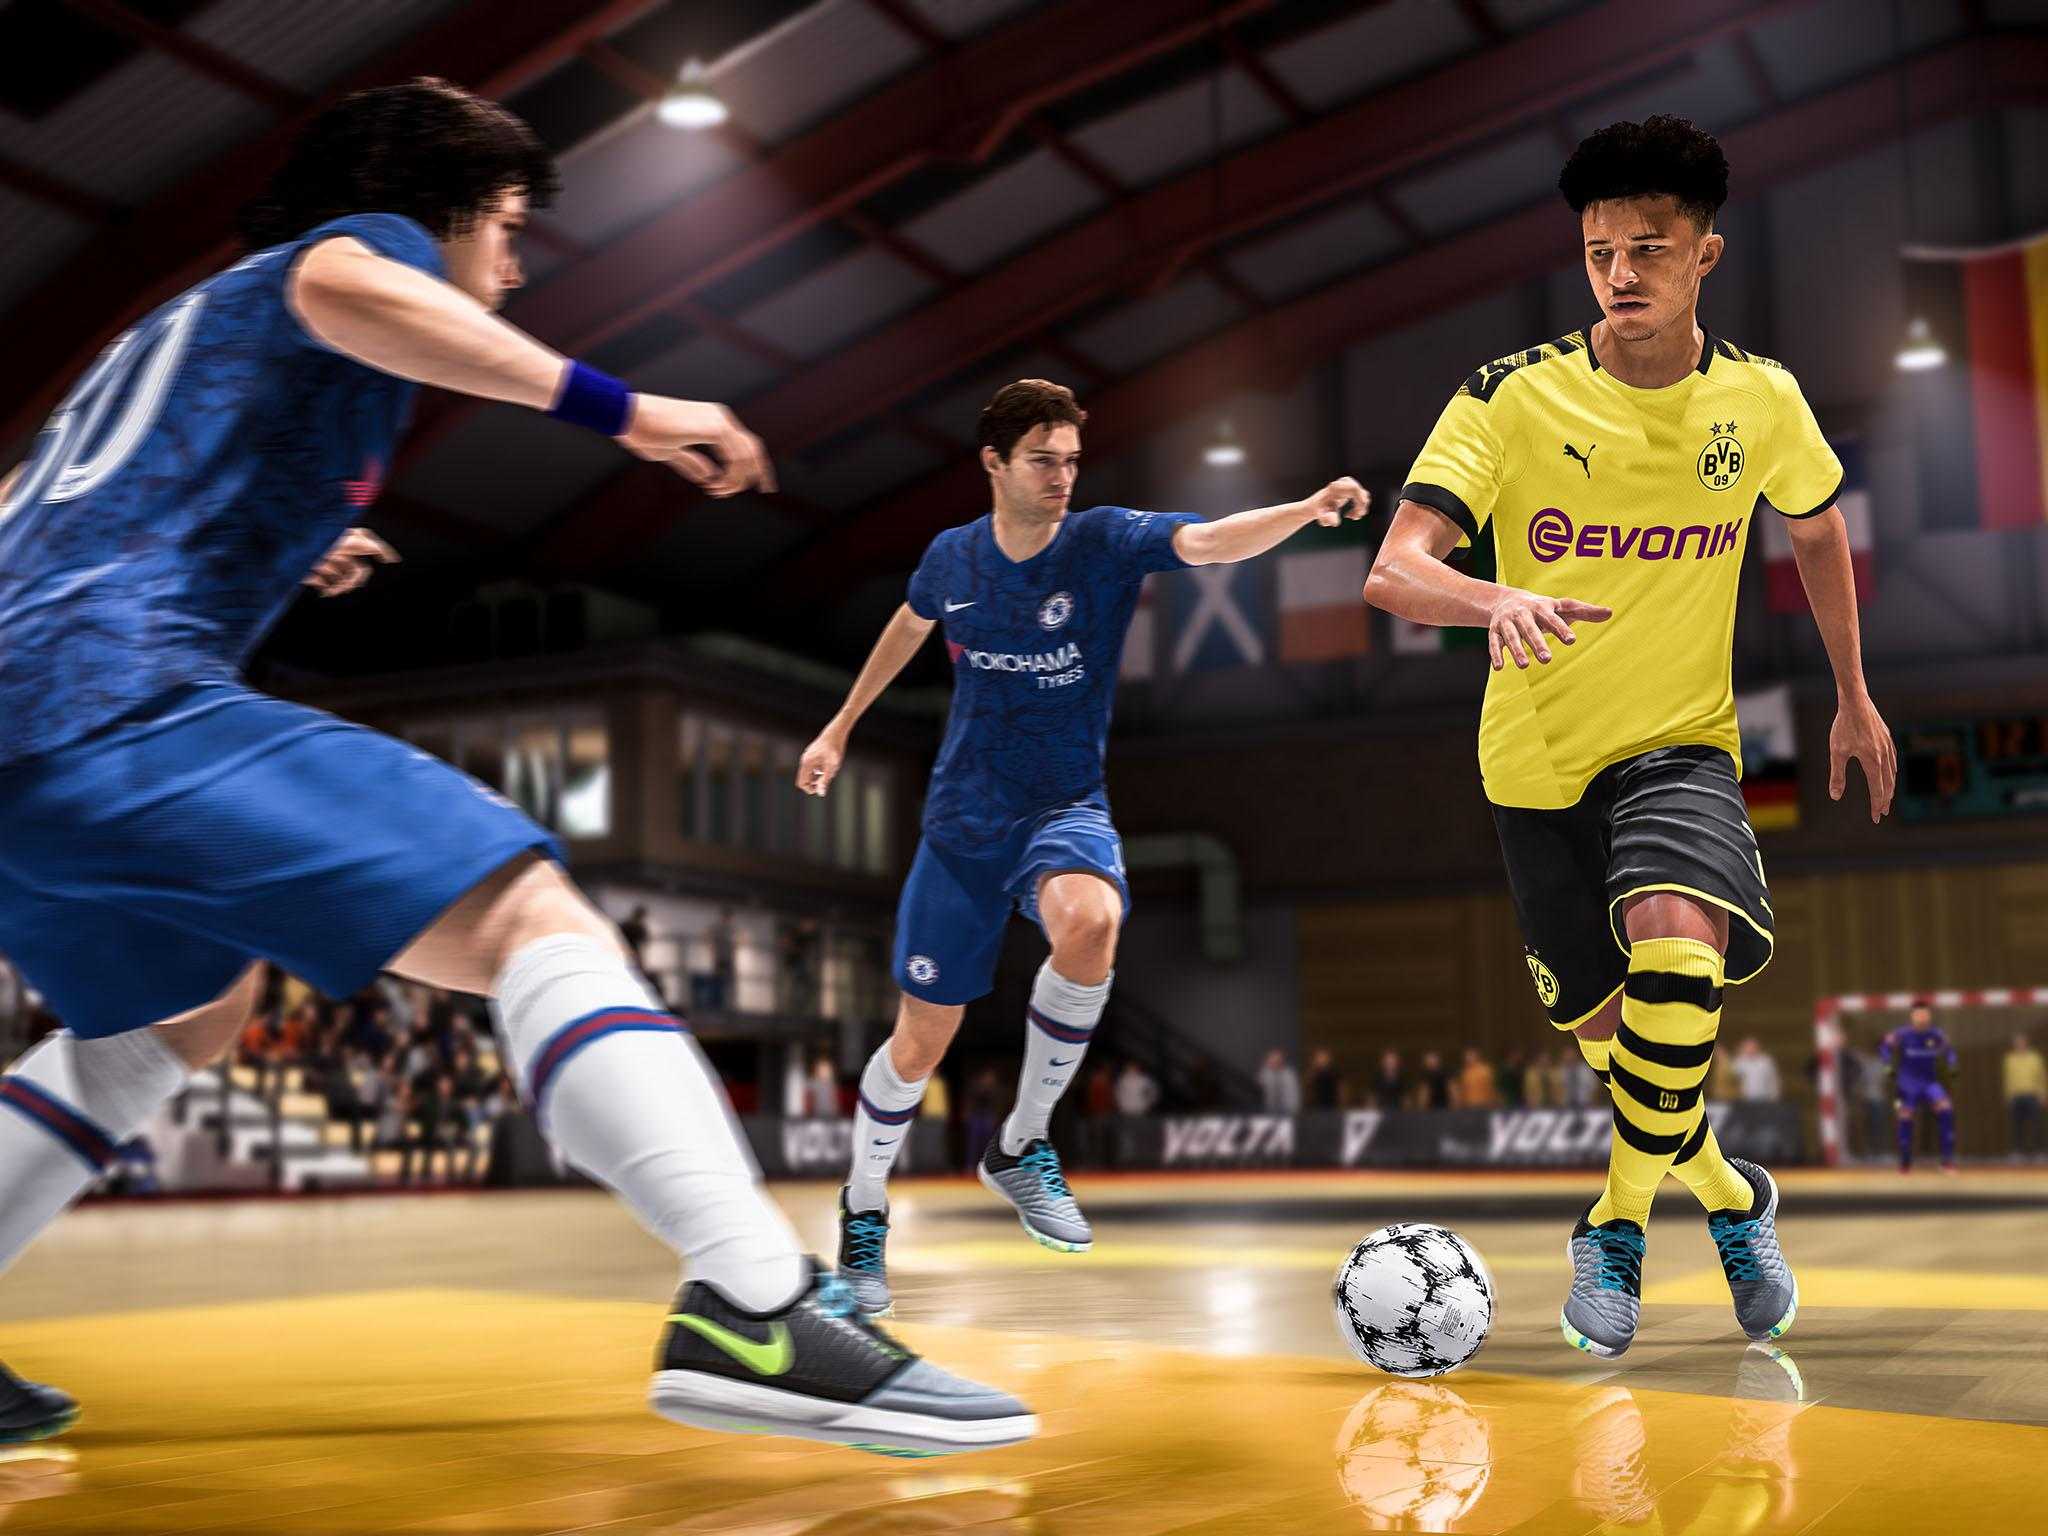 Fifa 20 ratings: Best players on new game revealed as full rankings are published